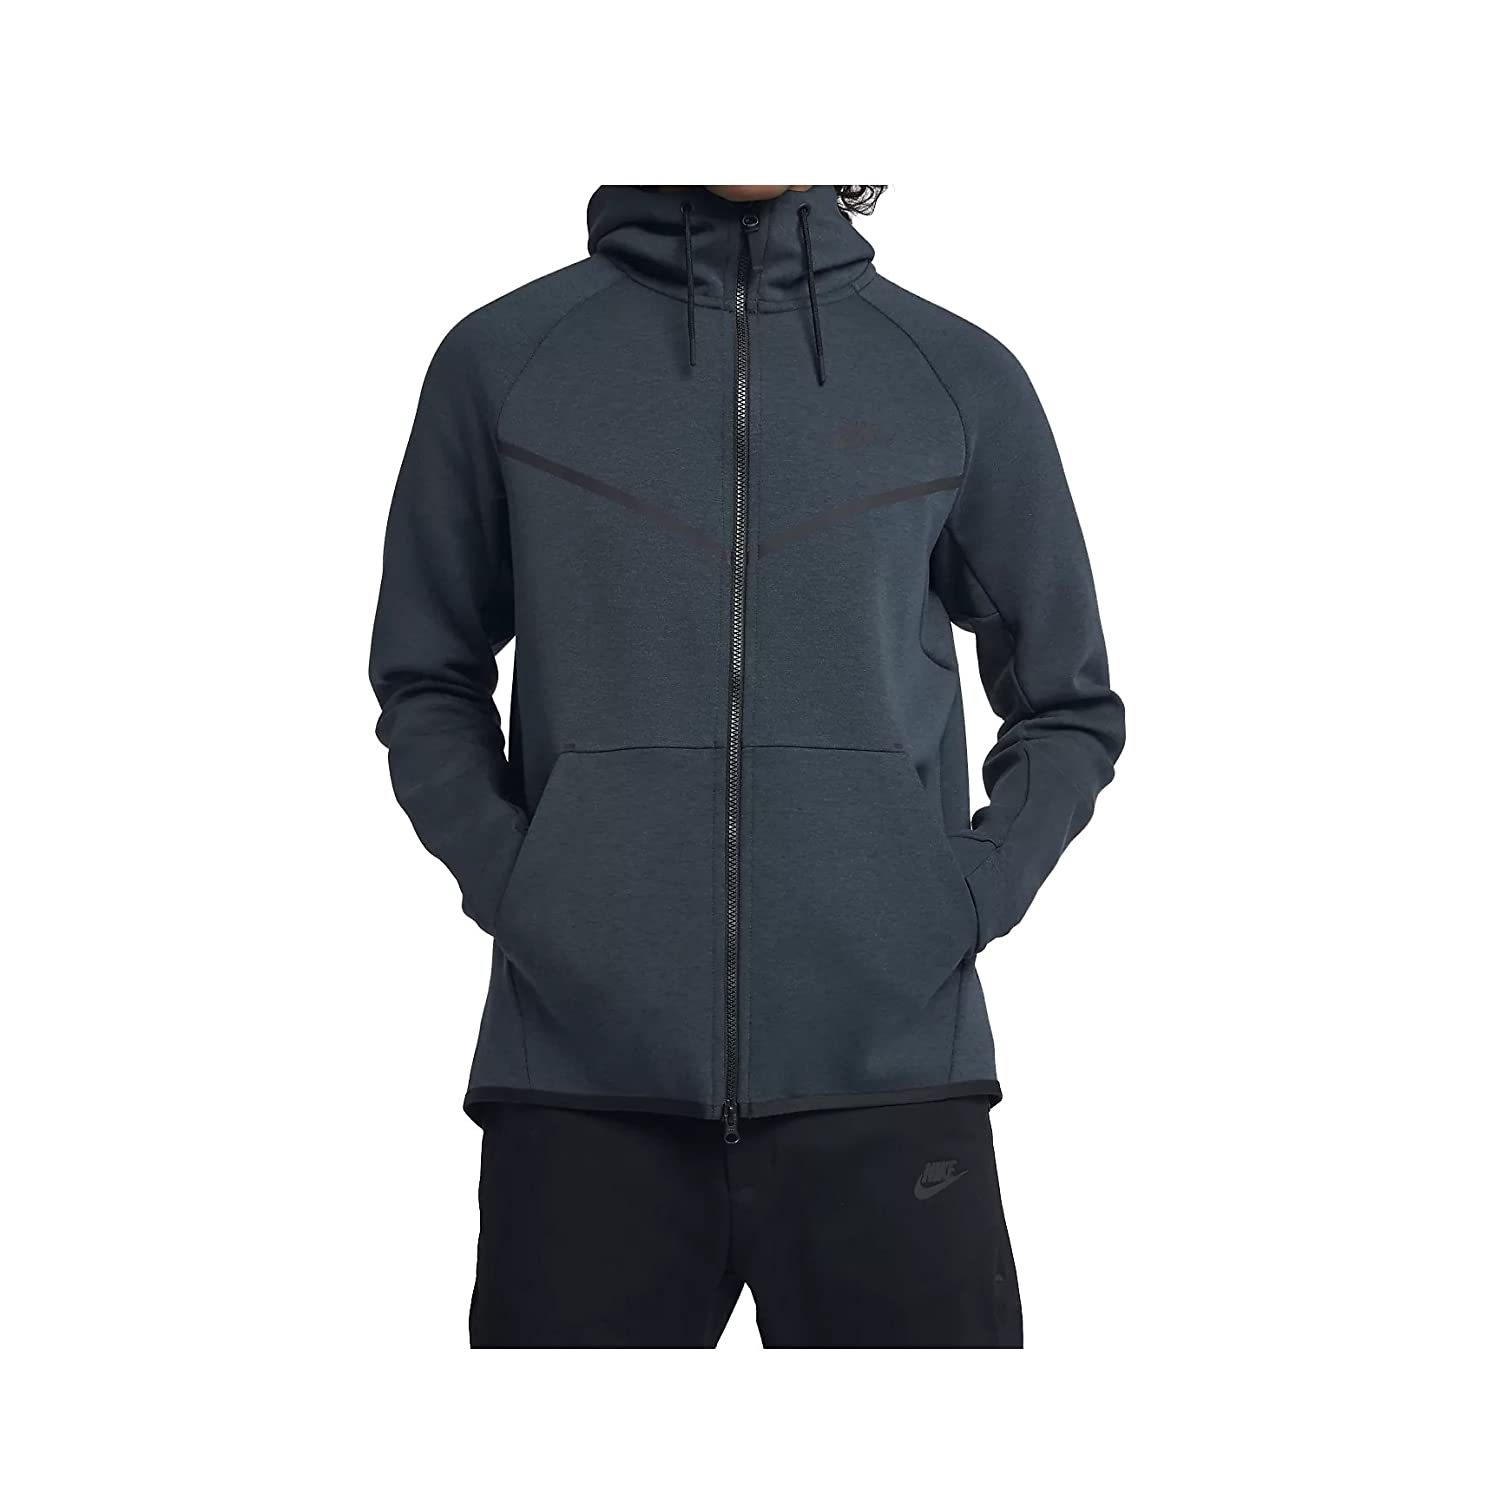 361ca3ba36 Amazon.com  Men s Nike Sportswear Windrunner Jacket  NIKE  Clothing